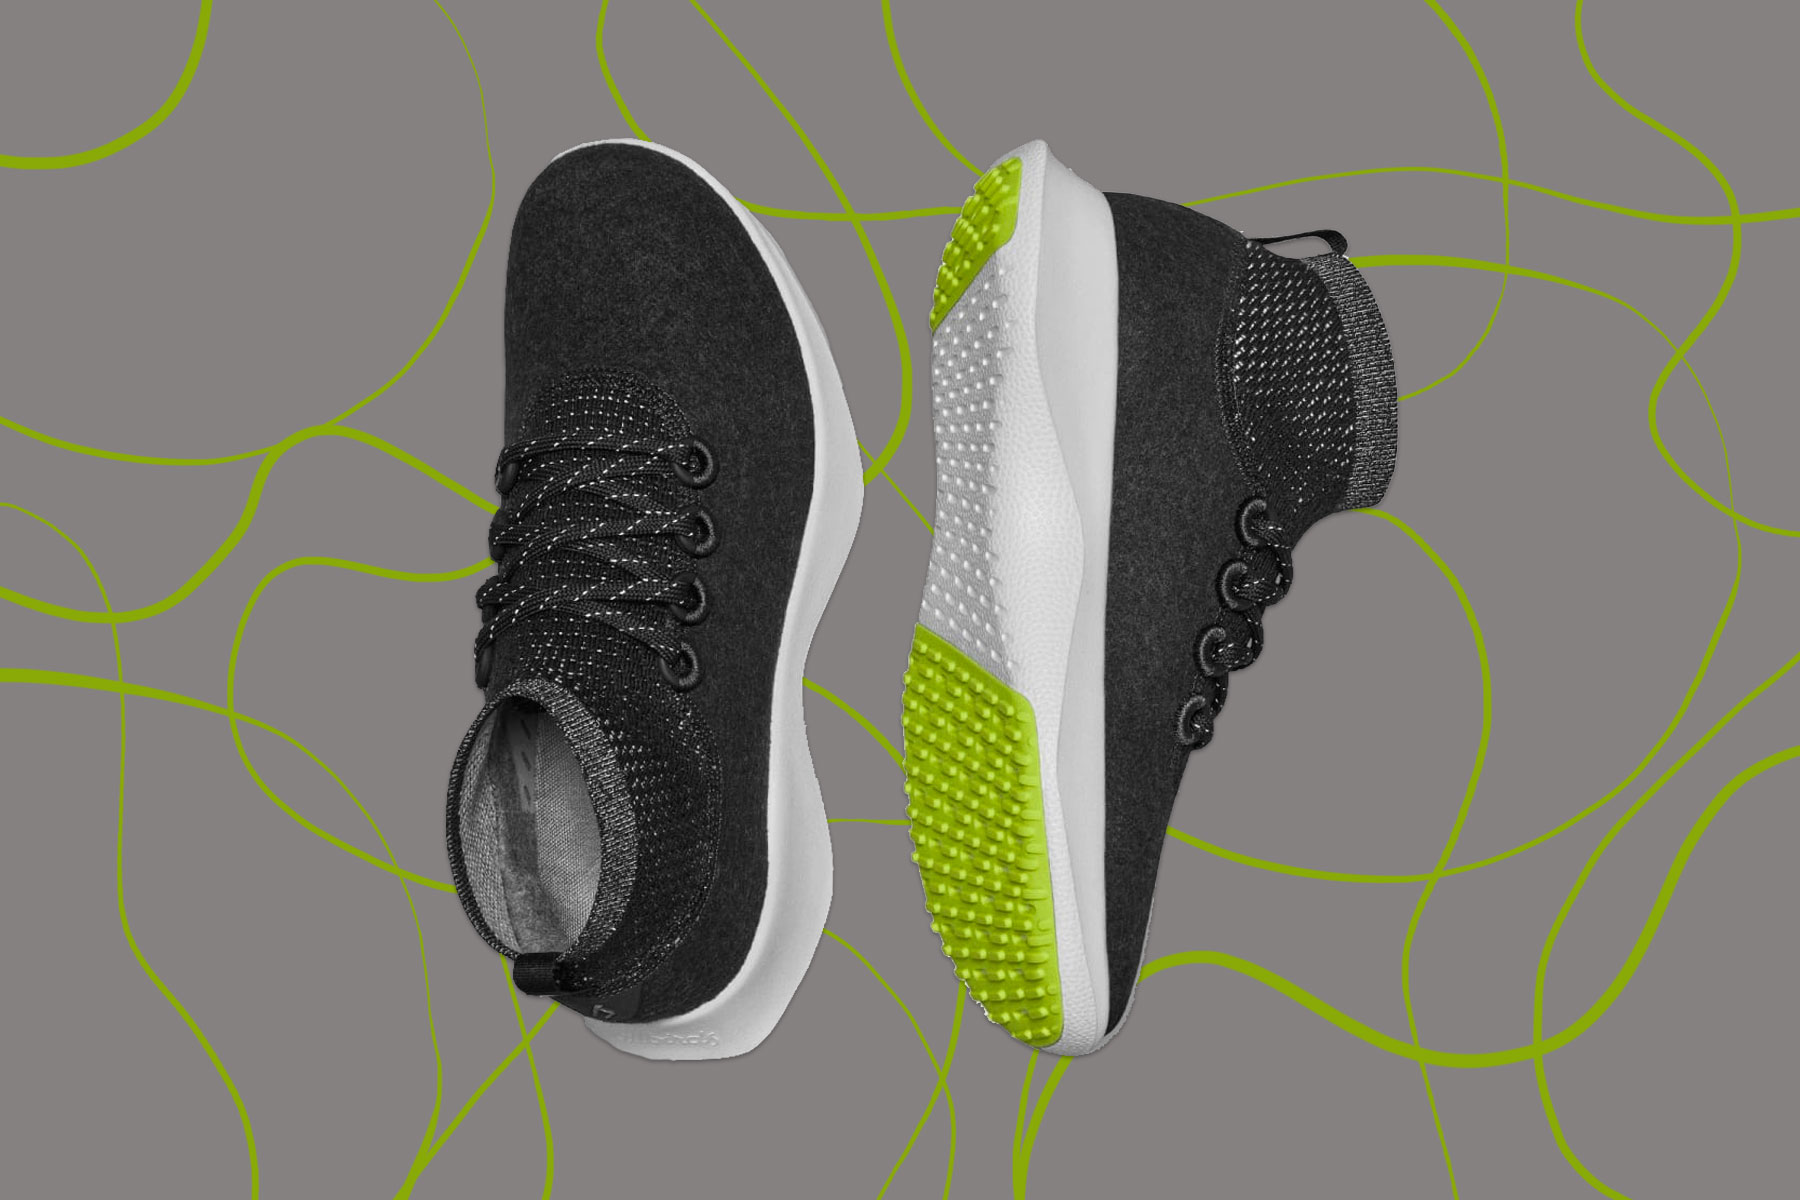 Black, white, and neon green running shoes